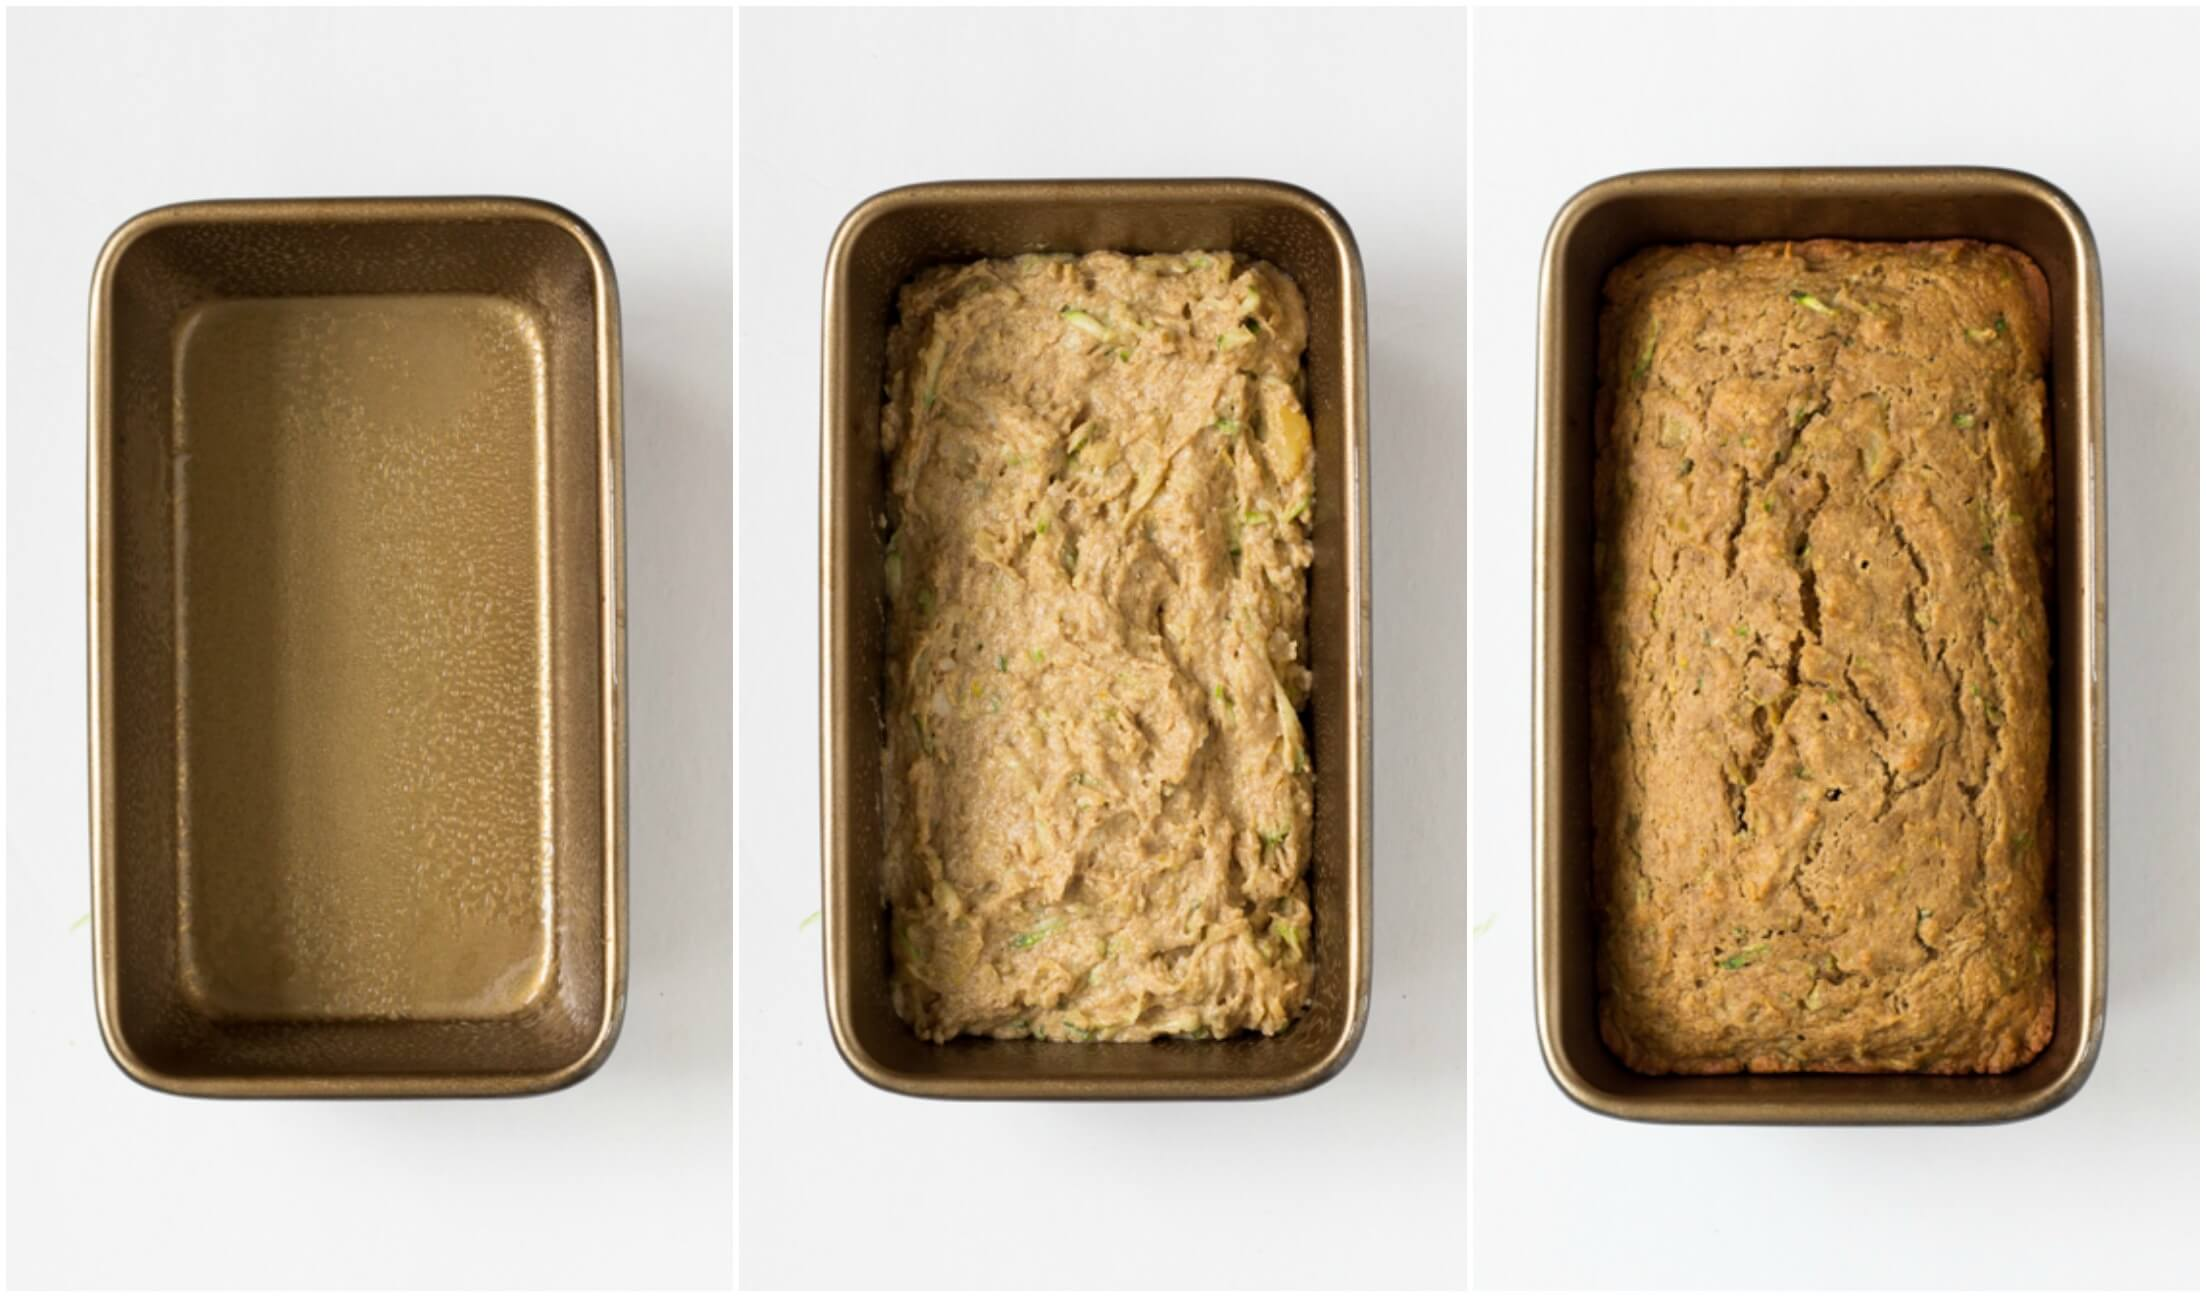 Healthy Zucchini Bread - no white sugar or white flour. Made with coconut oil and sweetened with crushed pineapple. Plus 146 calories! | littlebroken.com @littlebroken